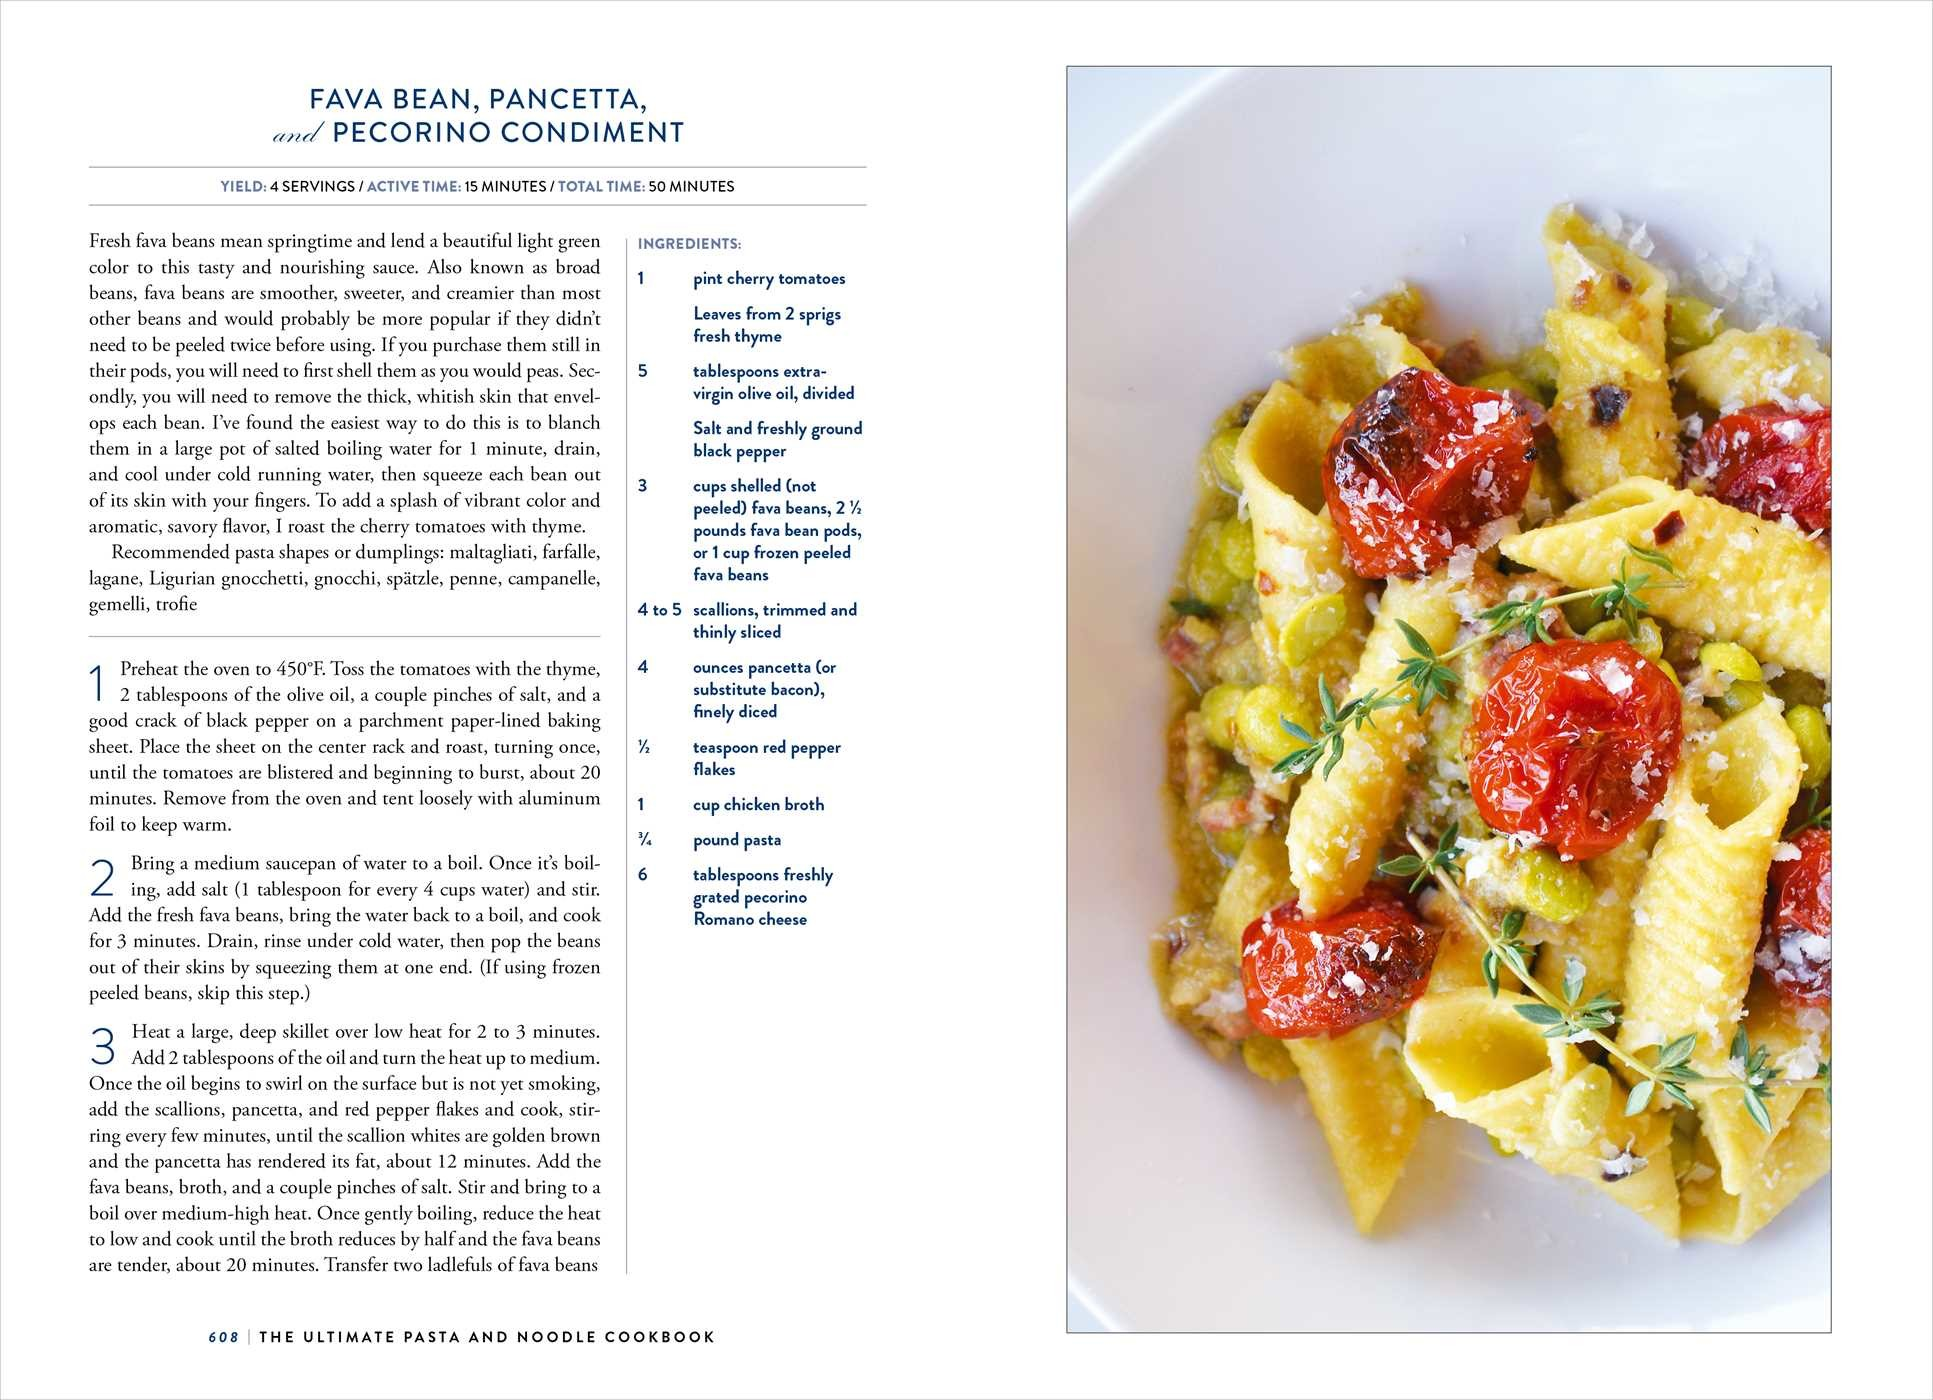 The ultimate pasta and noodle cookbook 9781604337334.in11